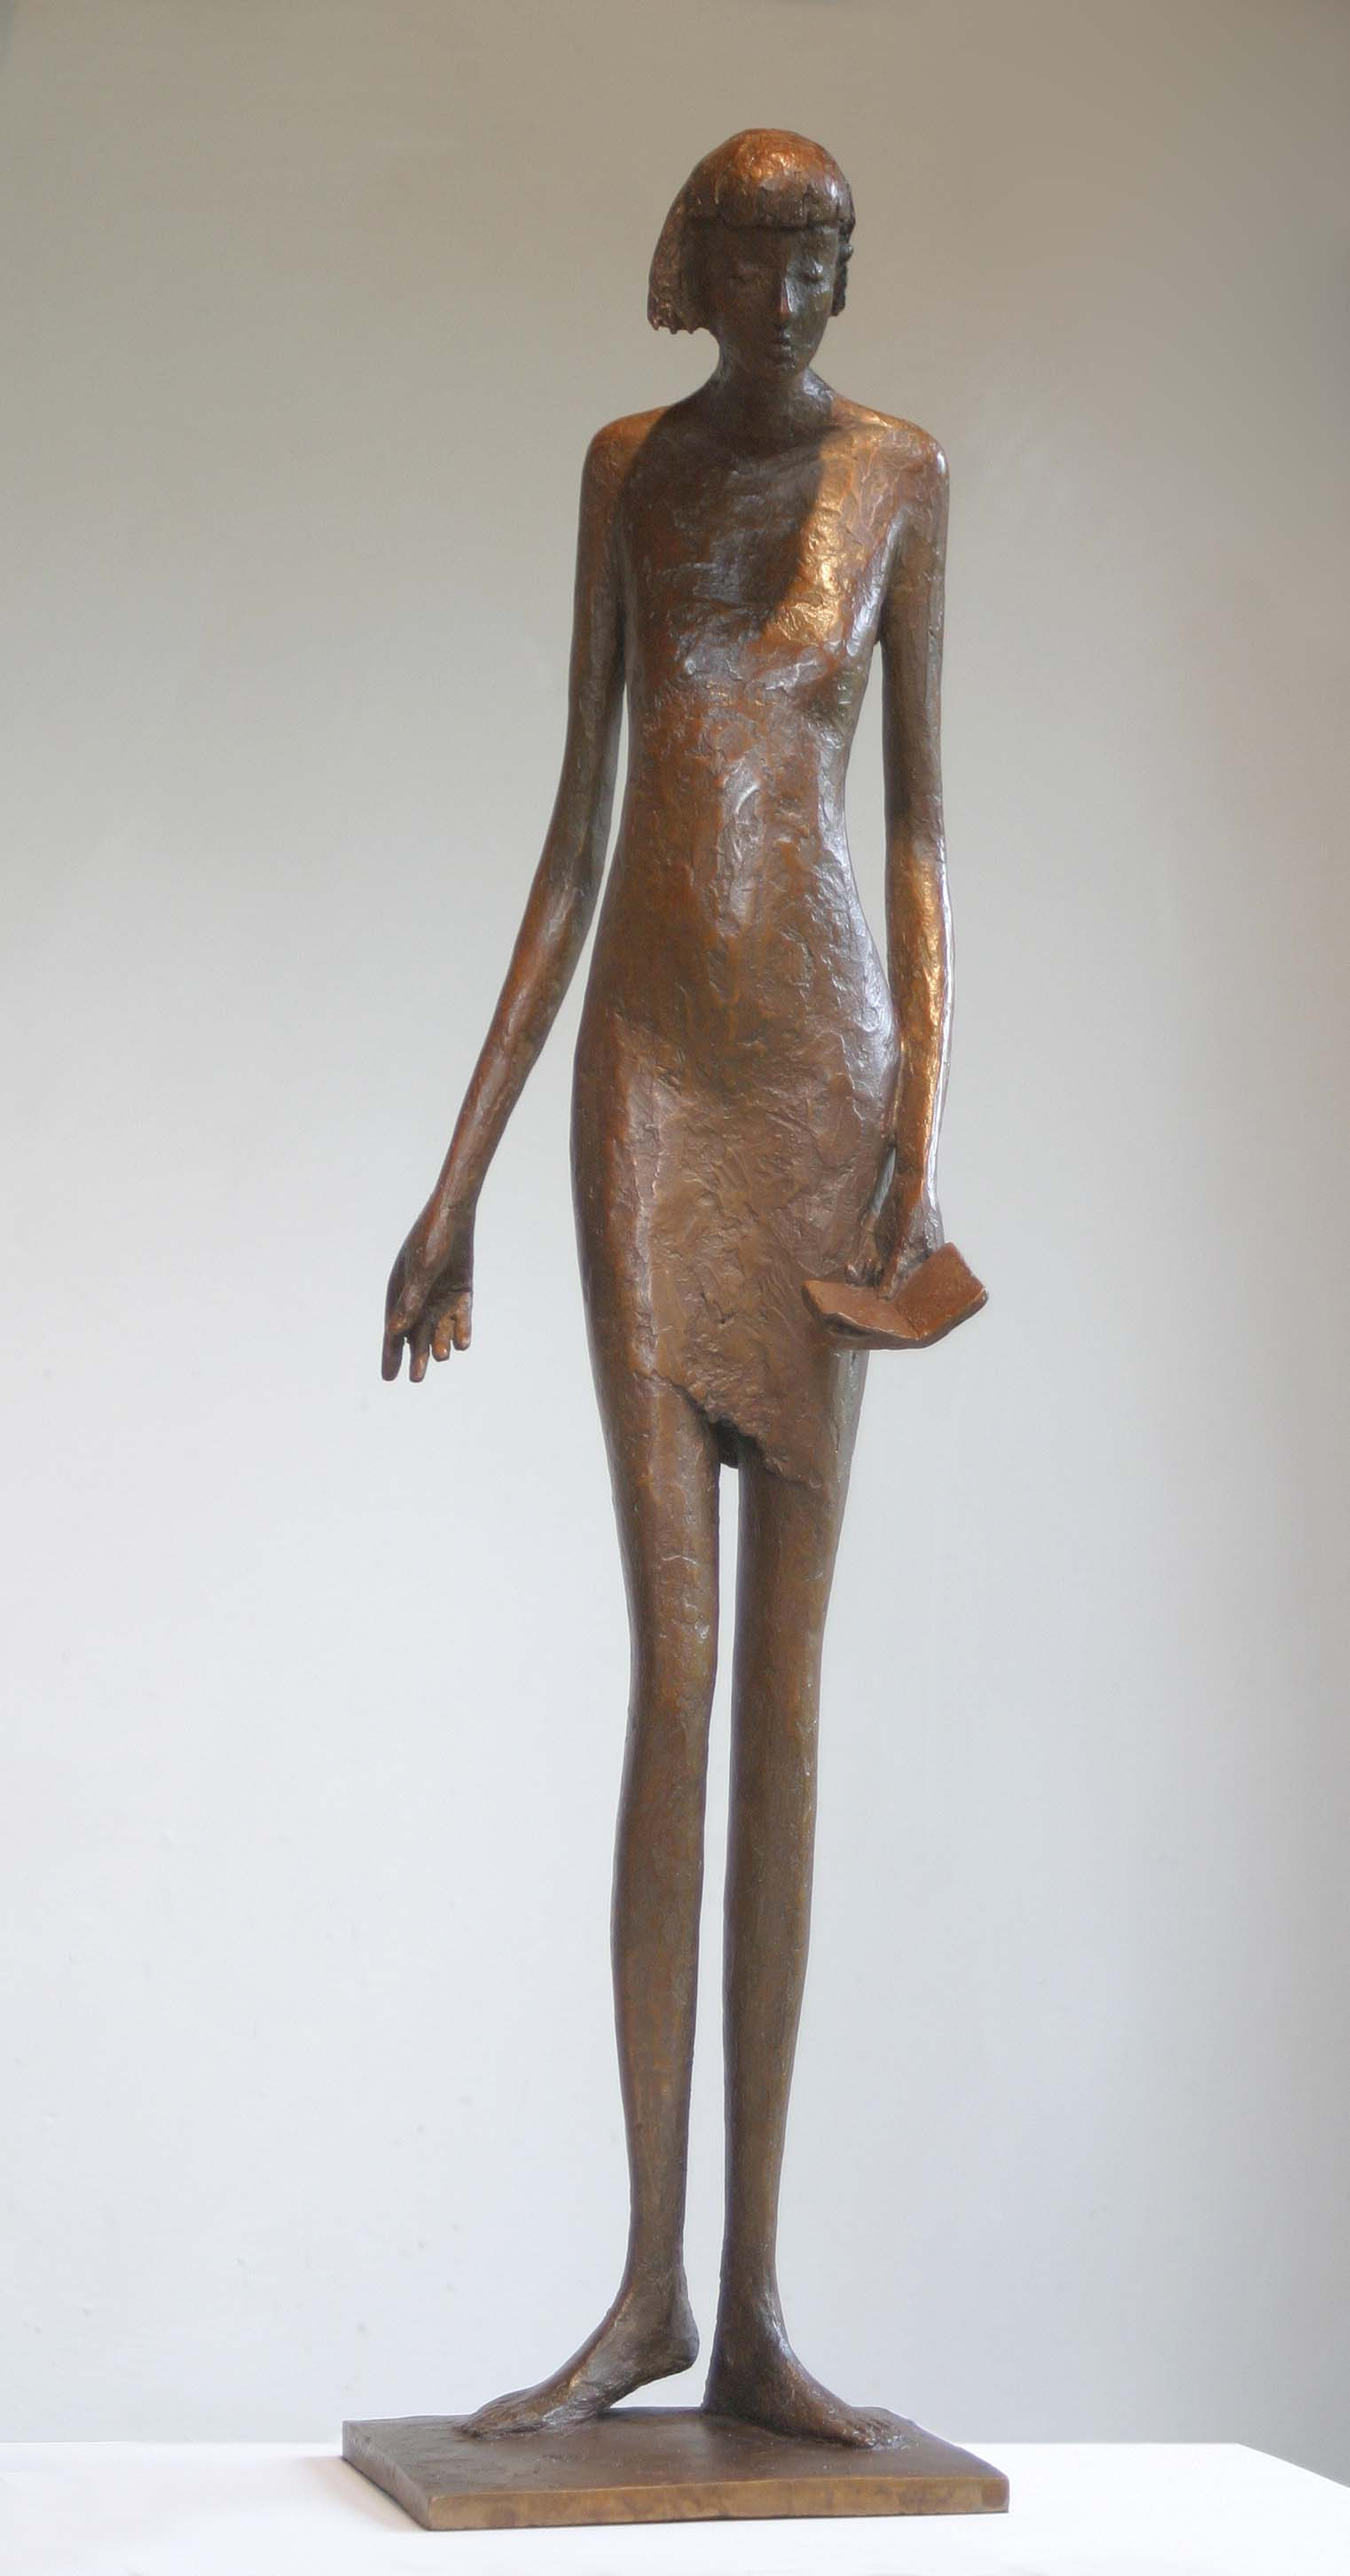 'Once upon a Time', Bronze, edt 2 of 9